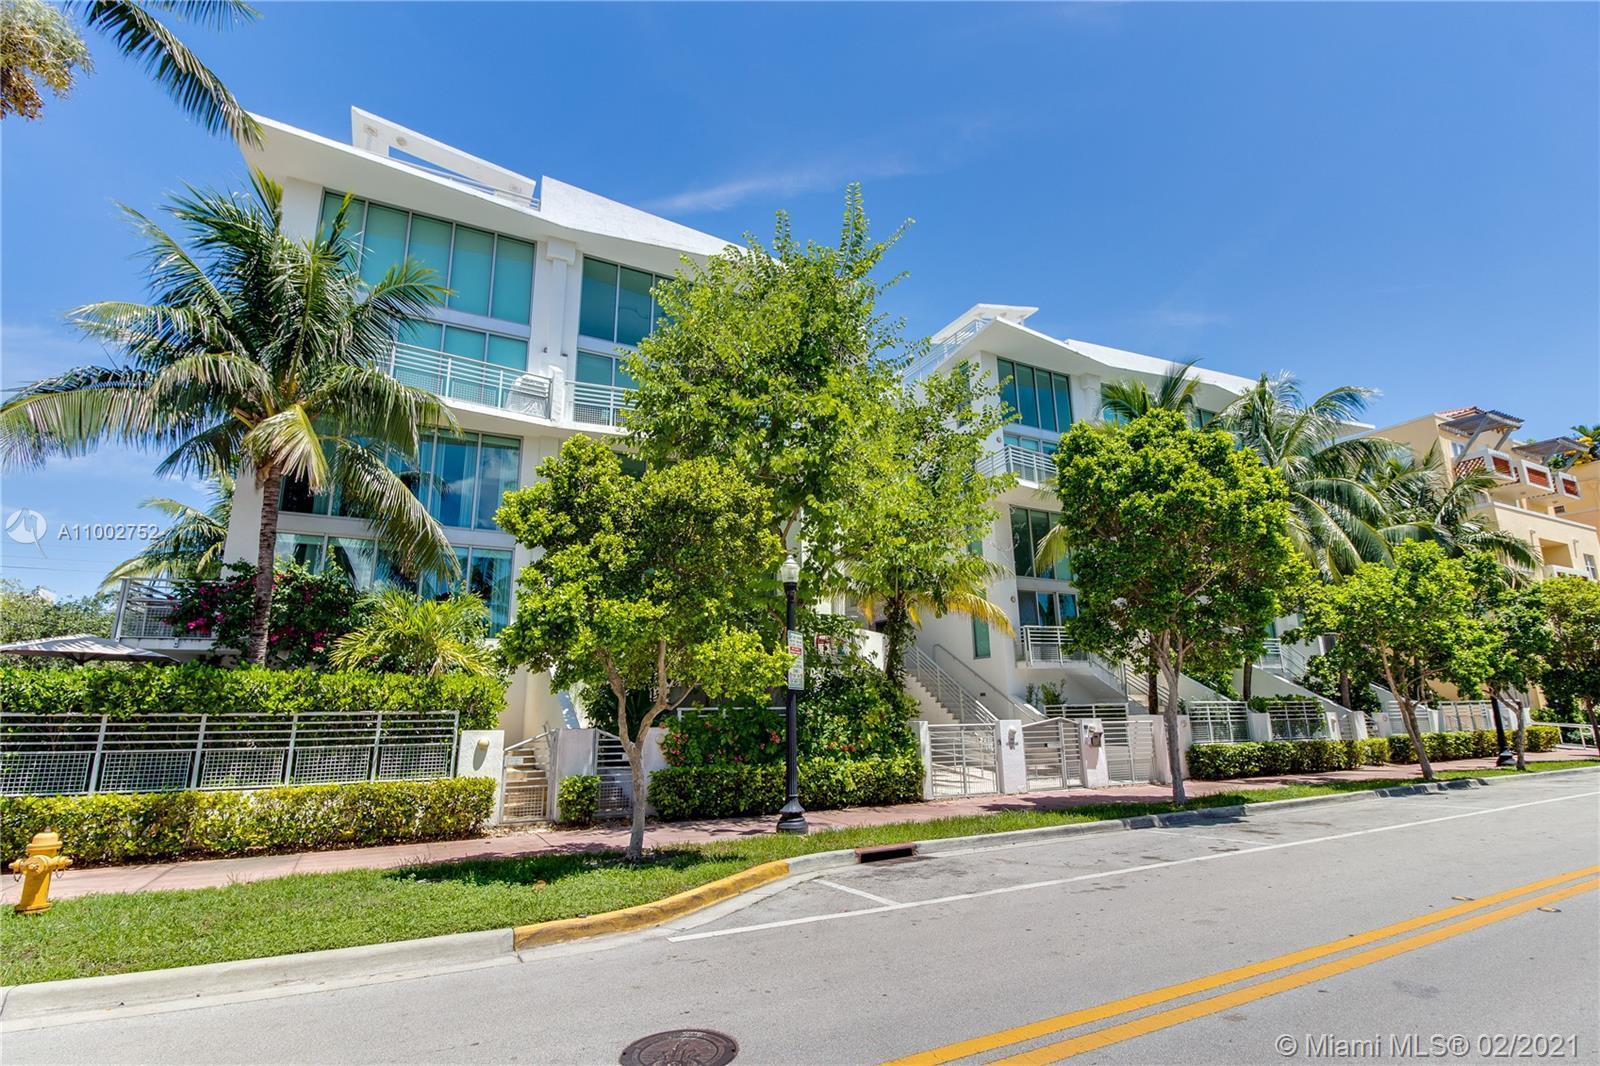 Brilliantly remodeled Penthouse in the Absolute Lofts, located in South Beach's most sought-after ne